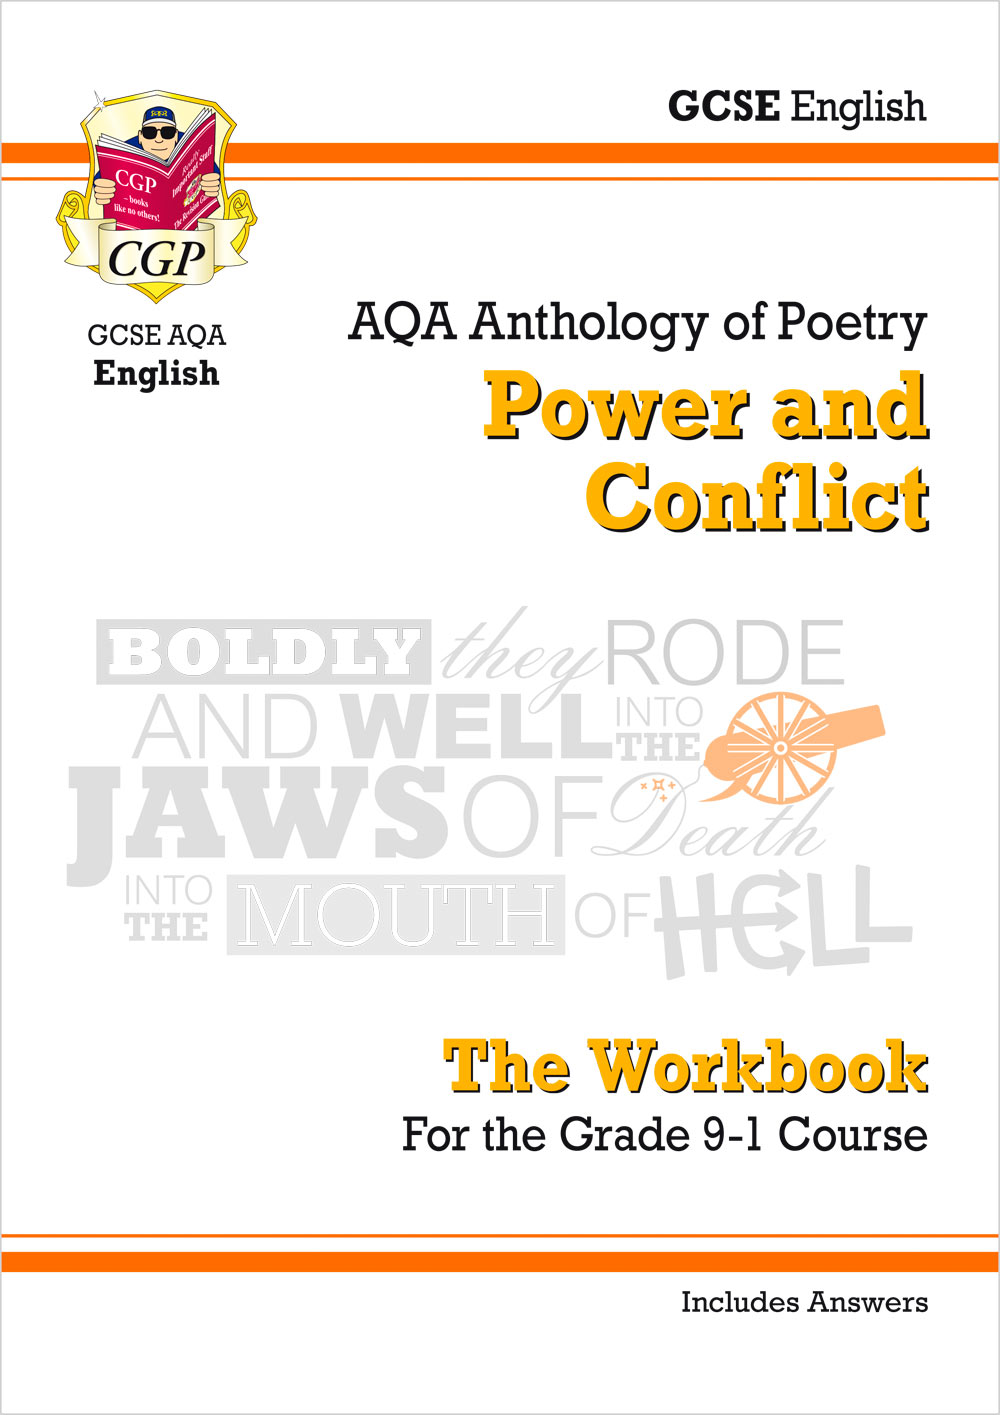 ACHW42 - GCSE English Literature AQA Poetry Workbook: Power & Conflict Anthology (includes Answers)